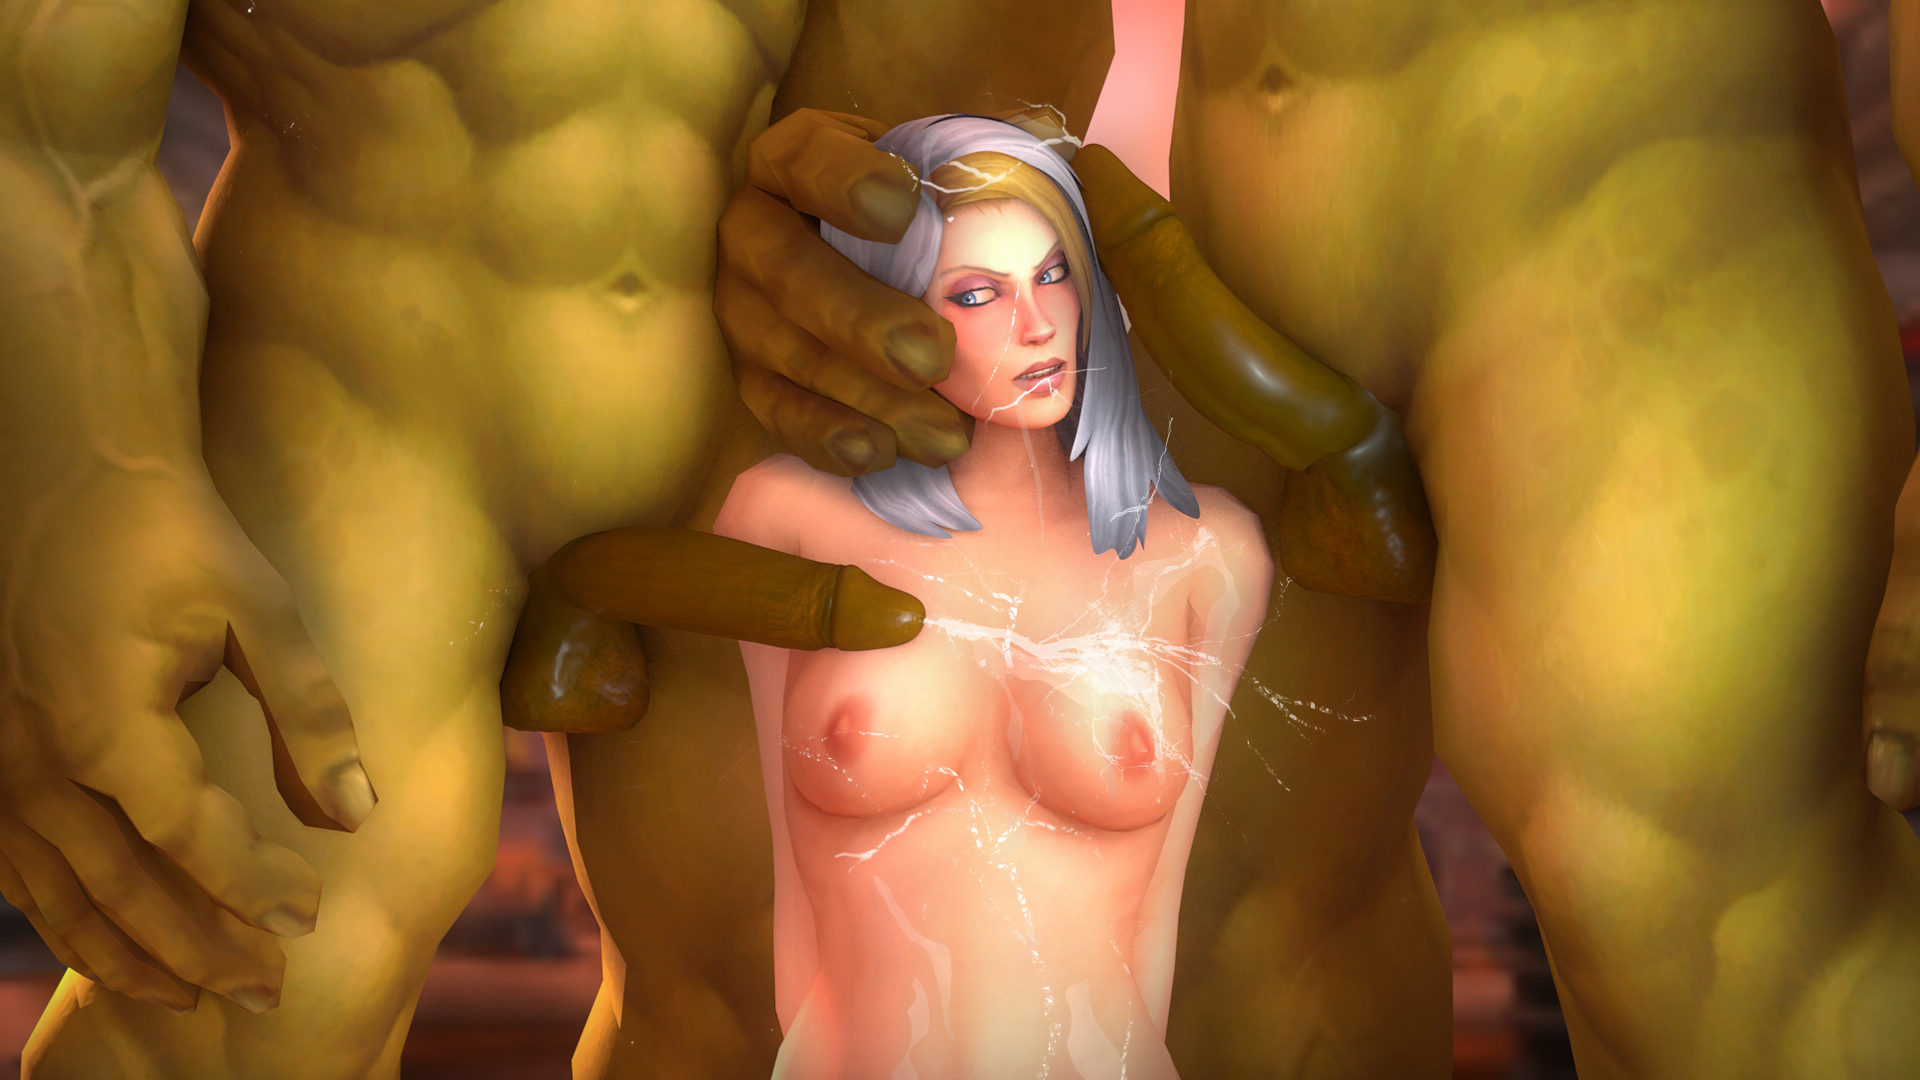 World of Warcraft hentia videos sex image